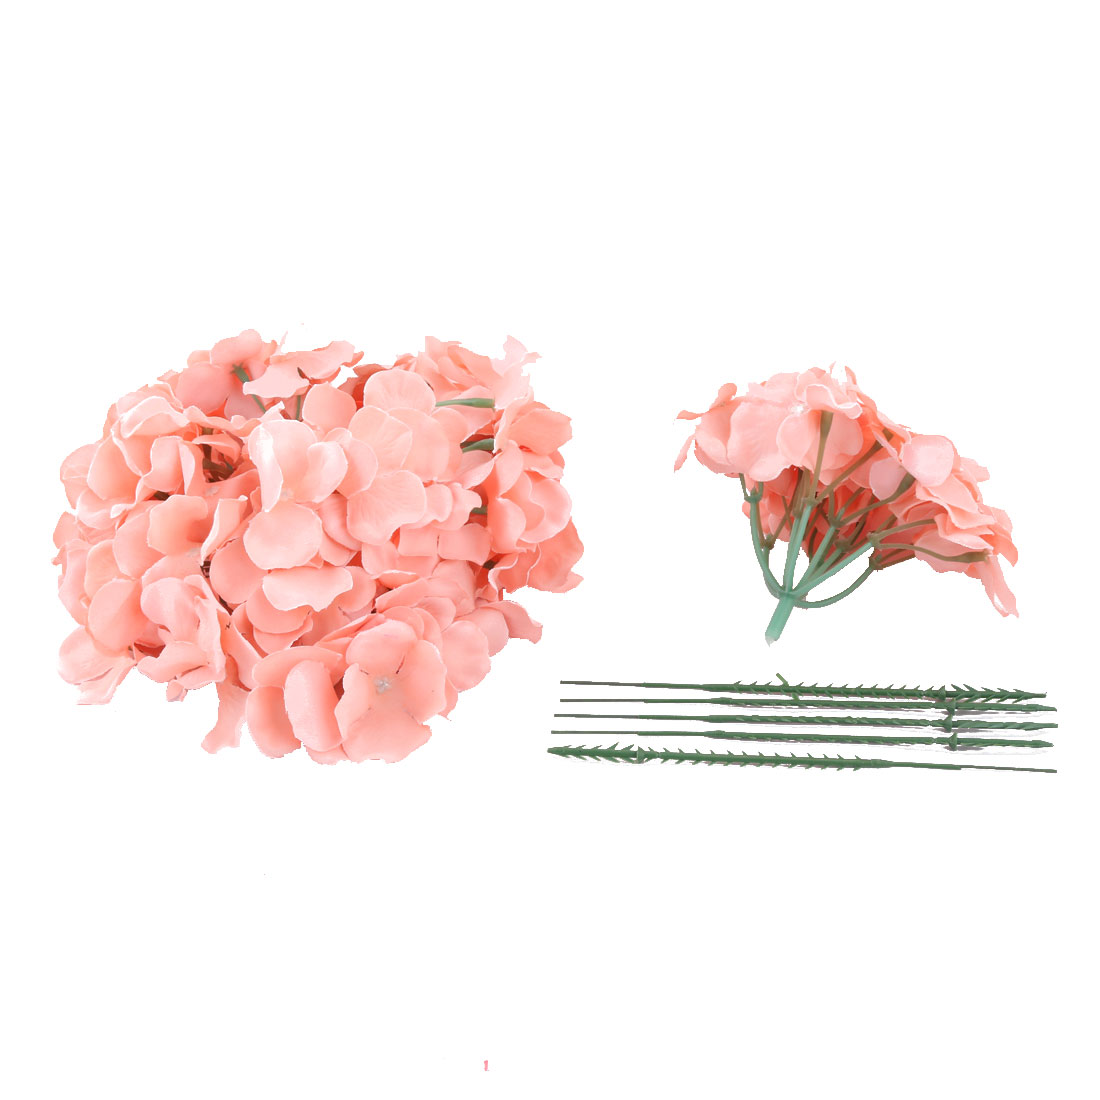 Celebration Fabric Handmade Artificial Flower Buds Petal Decorative Coral Pink 5pcs